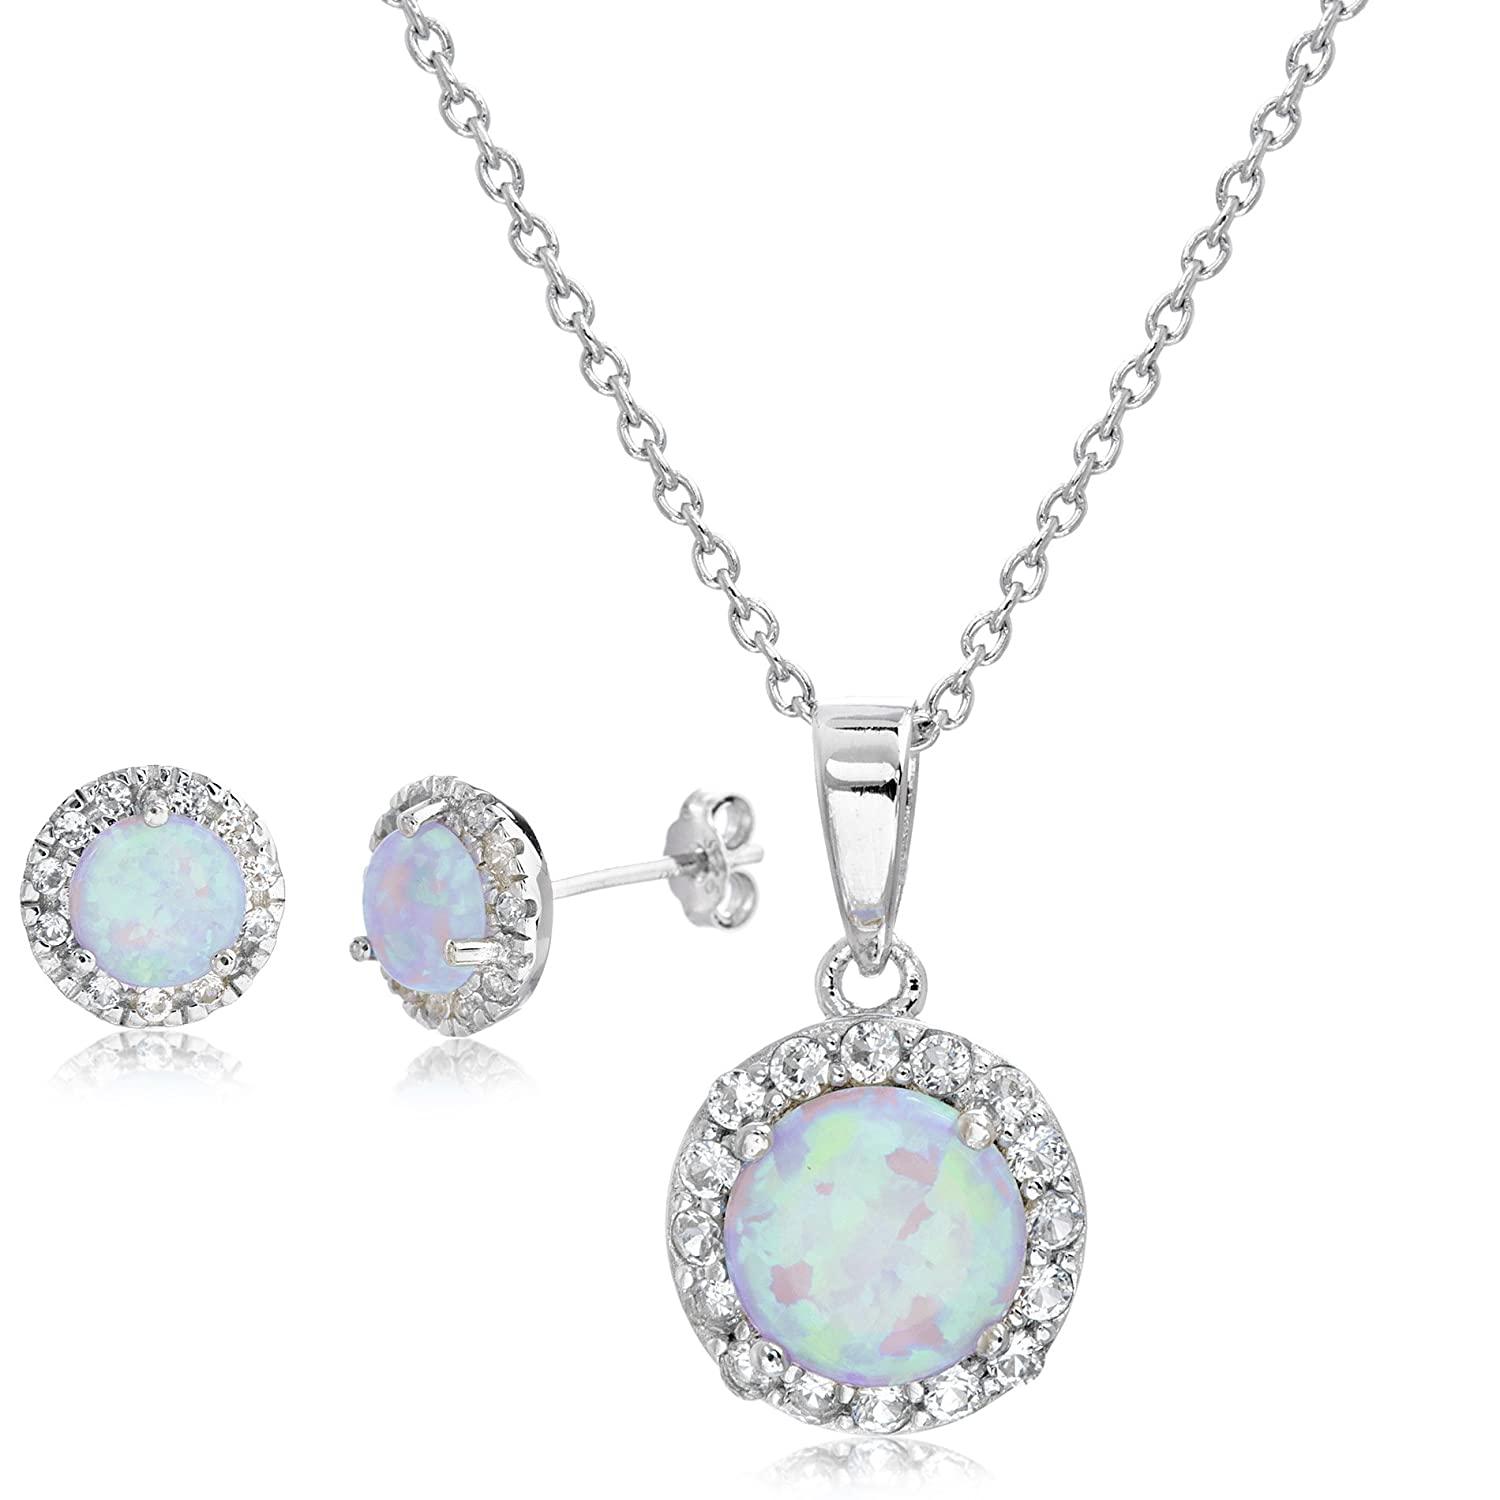 Lesa Michele Lab Created Opal & Cubic Zirconia 2pc Pendant & Earring Set in Sterling Silver